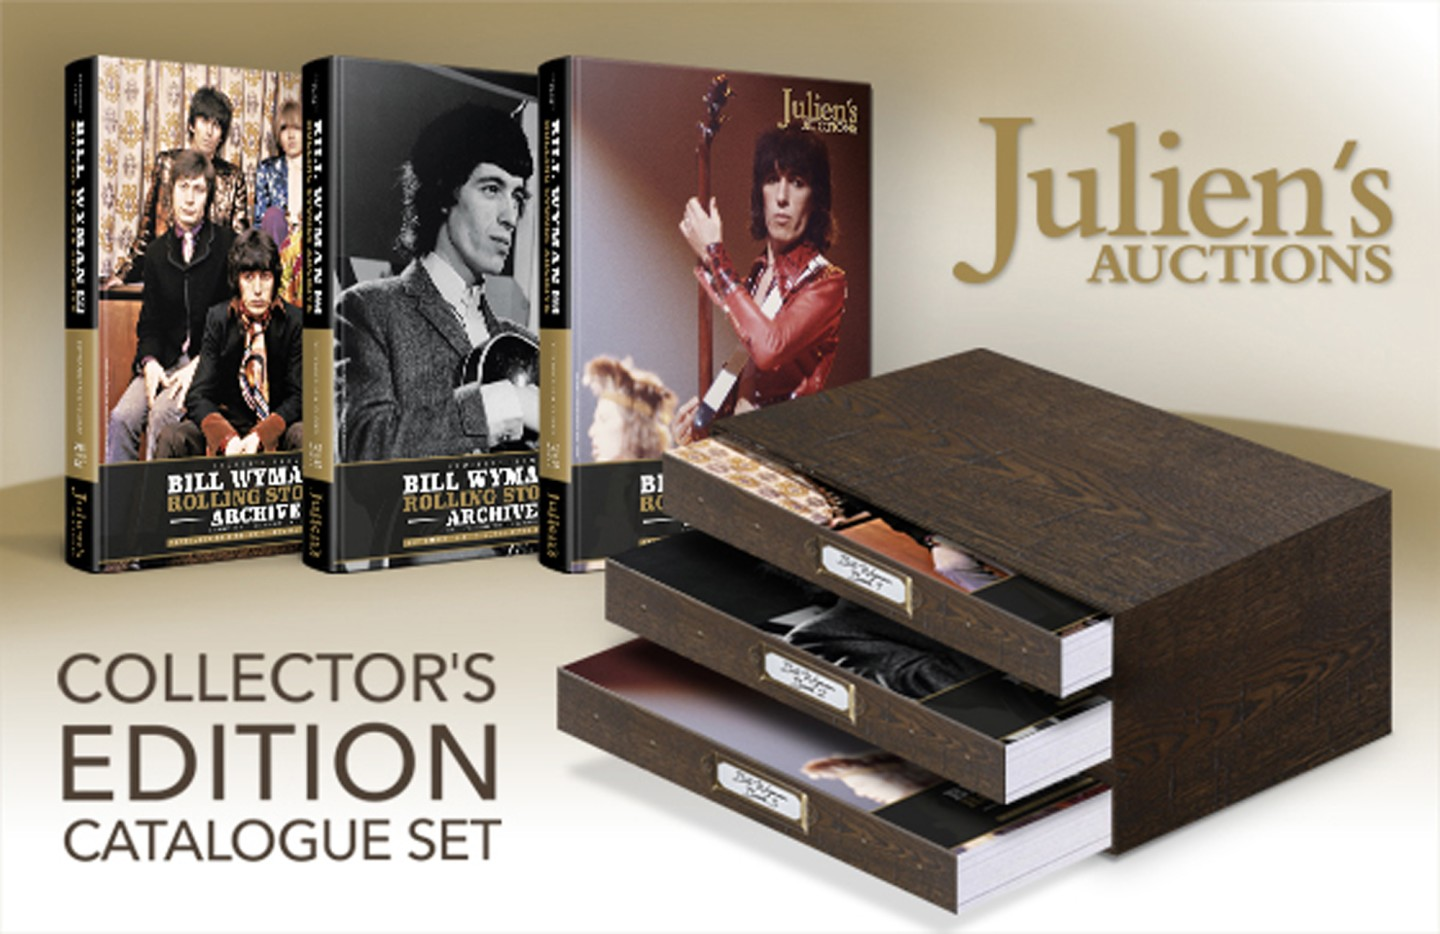 Bill Wyman's collection is massive and extremely well catalogued - that's a three-volume auction catalogue - and it is likely that there will be untold treasure available at the auction